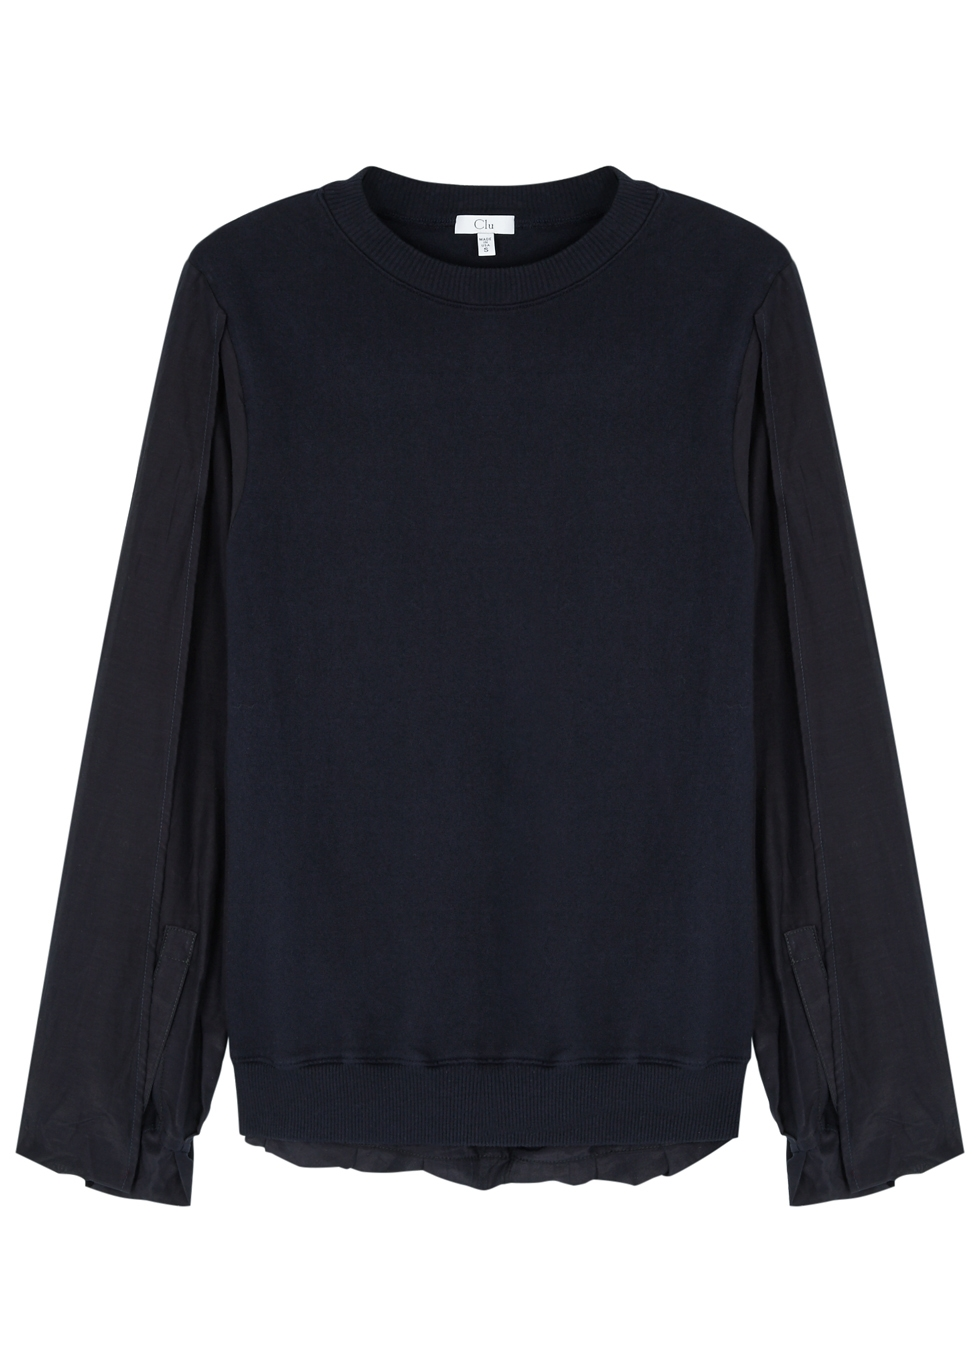 CLU NAVY SILK-BLEND AND JERSEY TOP